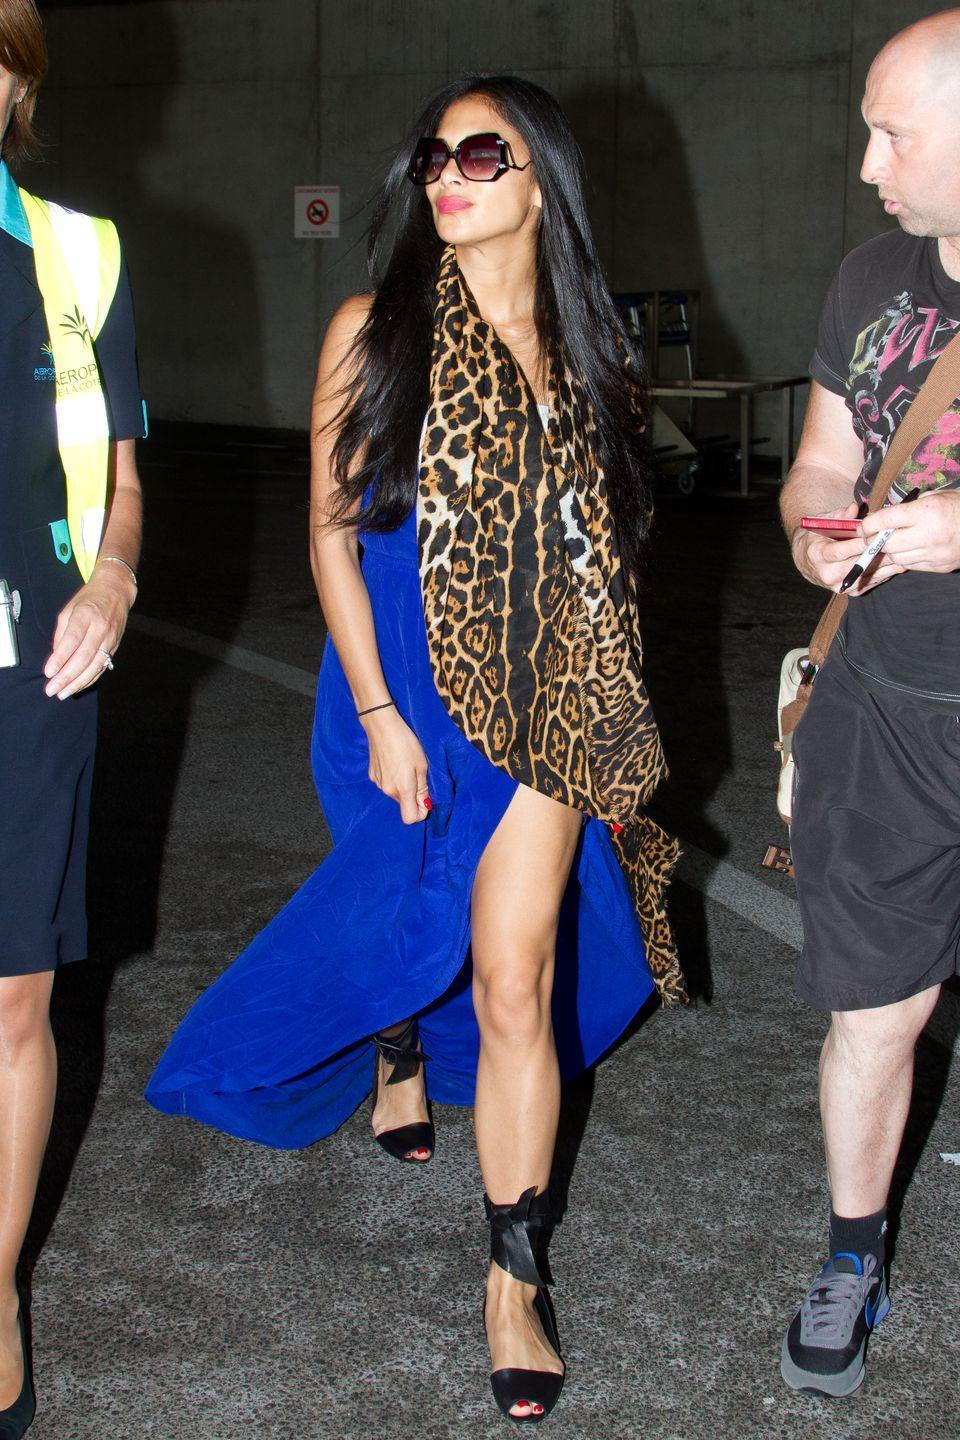 <p><strong>Nicole Scherzinger, 2012: </strong>How on earth is she not paranoid that she's stepping on the back of her dress the entire time?</p>